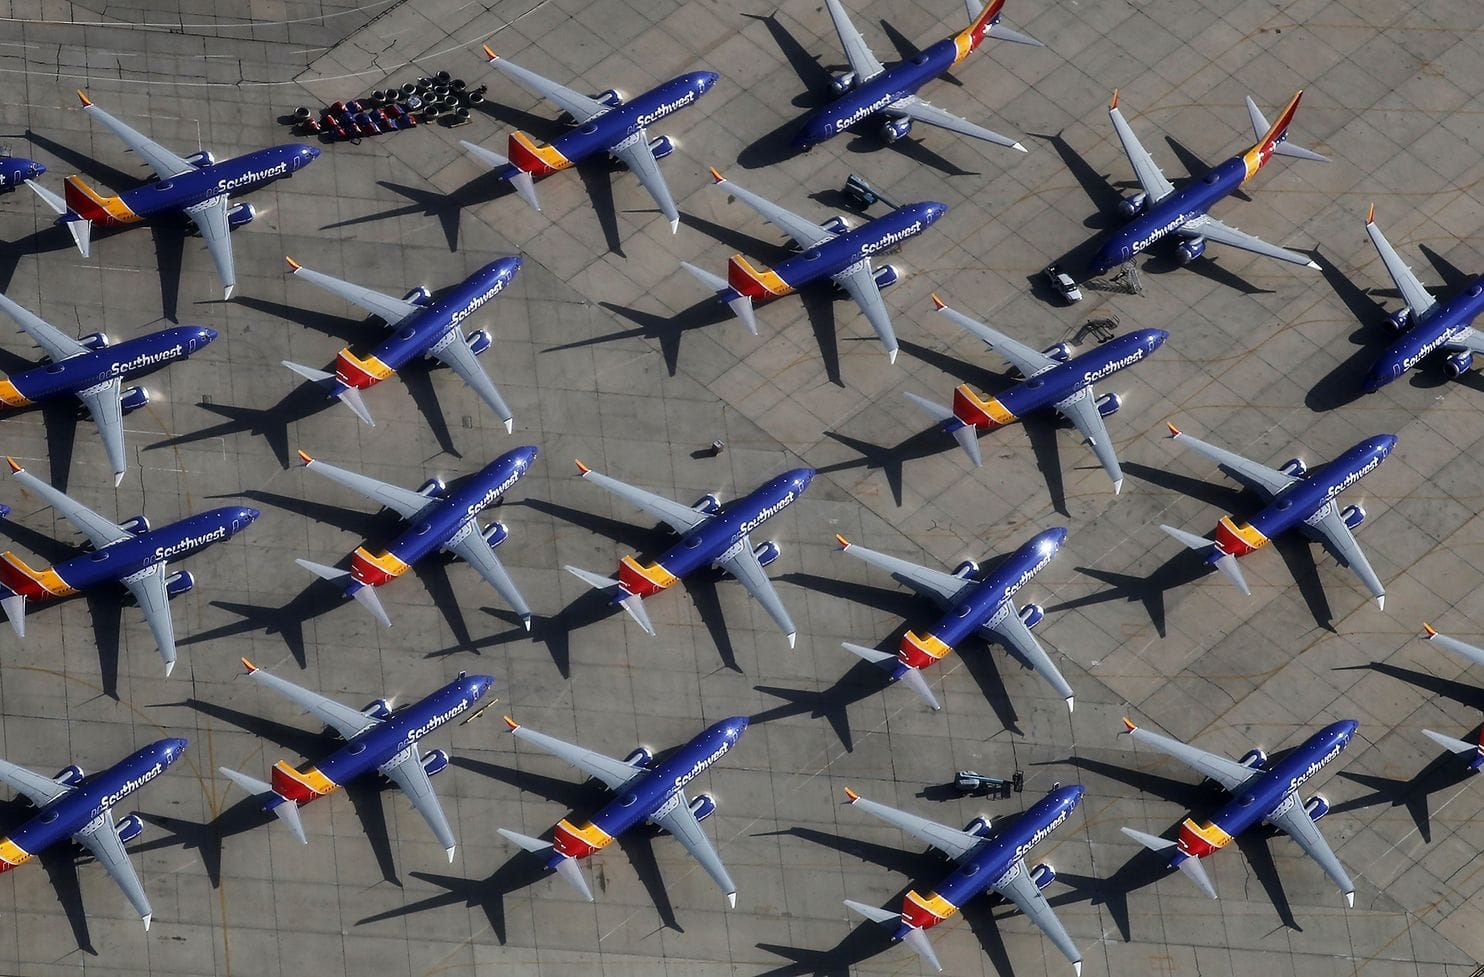 BREAKING Trading halted after Boeing doesn't expect regulators to allow the 737MAX to fly until June - Aviation news and store